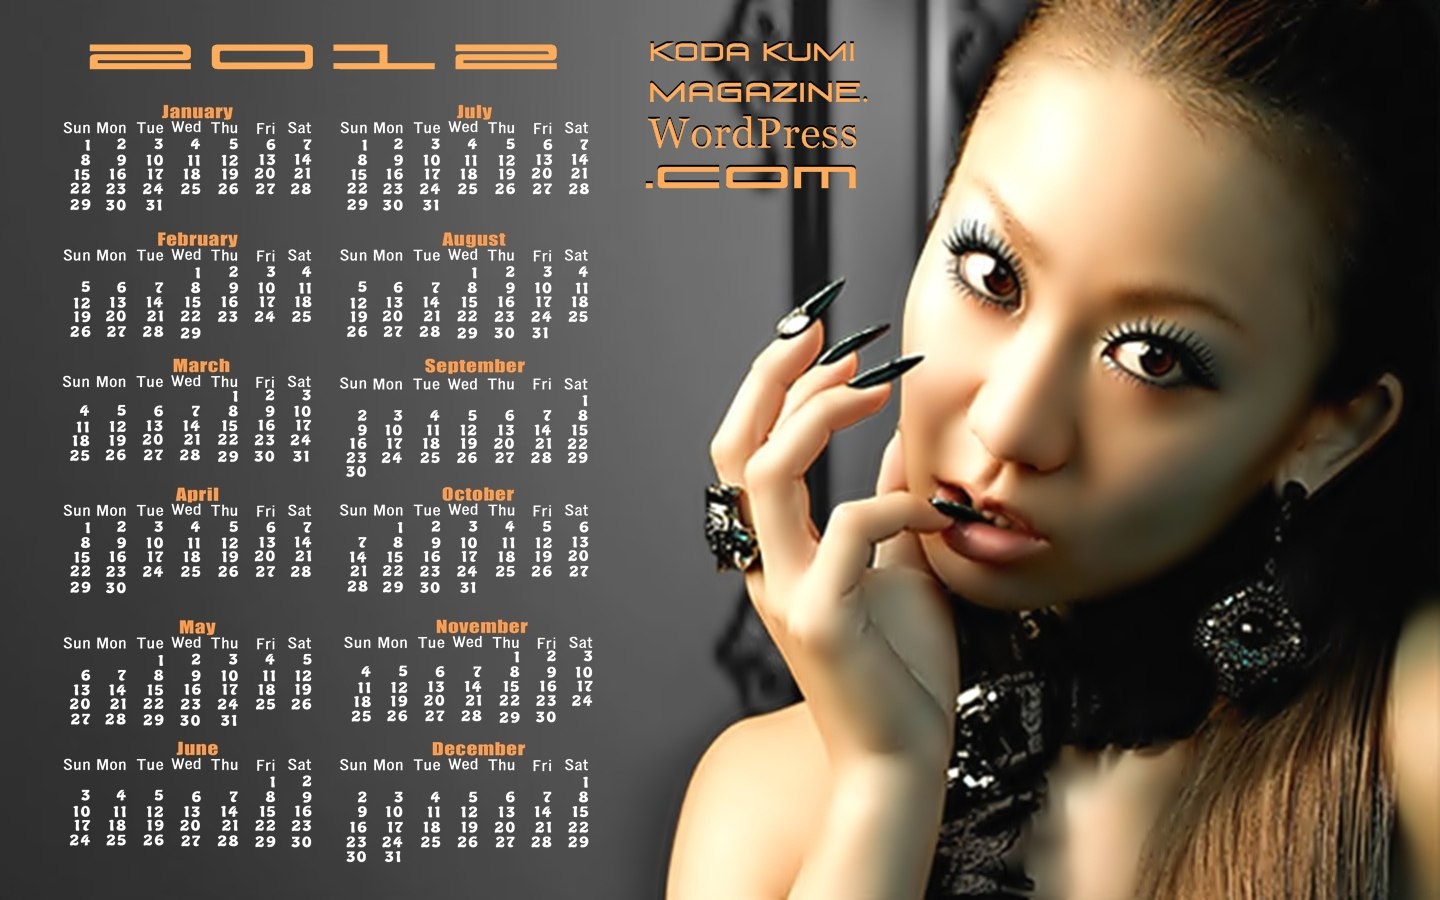 Wallpaper Brazil Girl Wallpaper Calendar 2012 倖田來未 雑誌